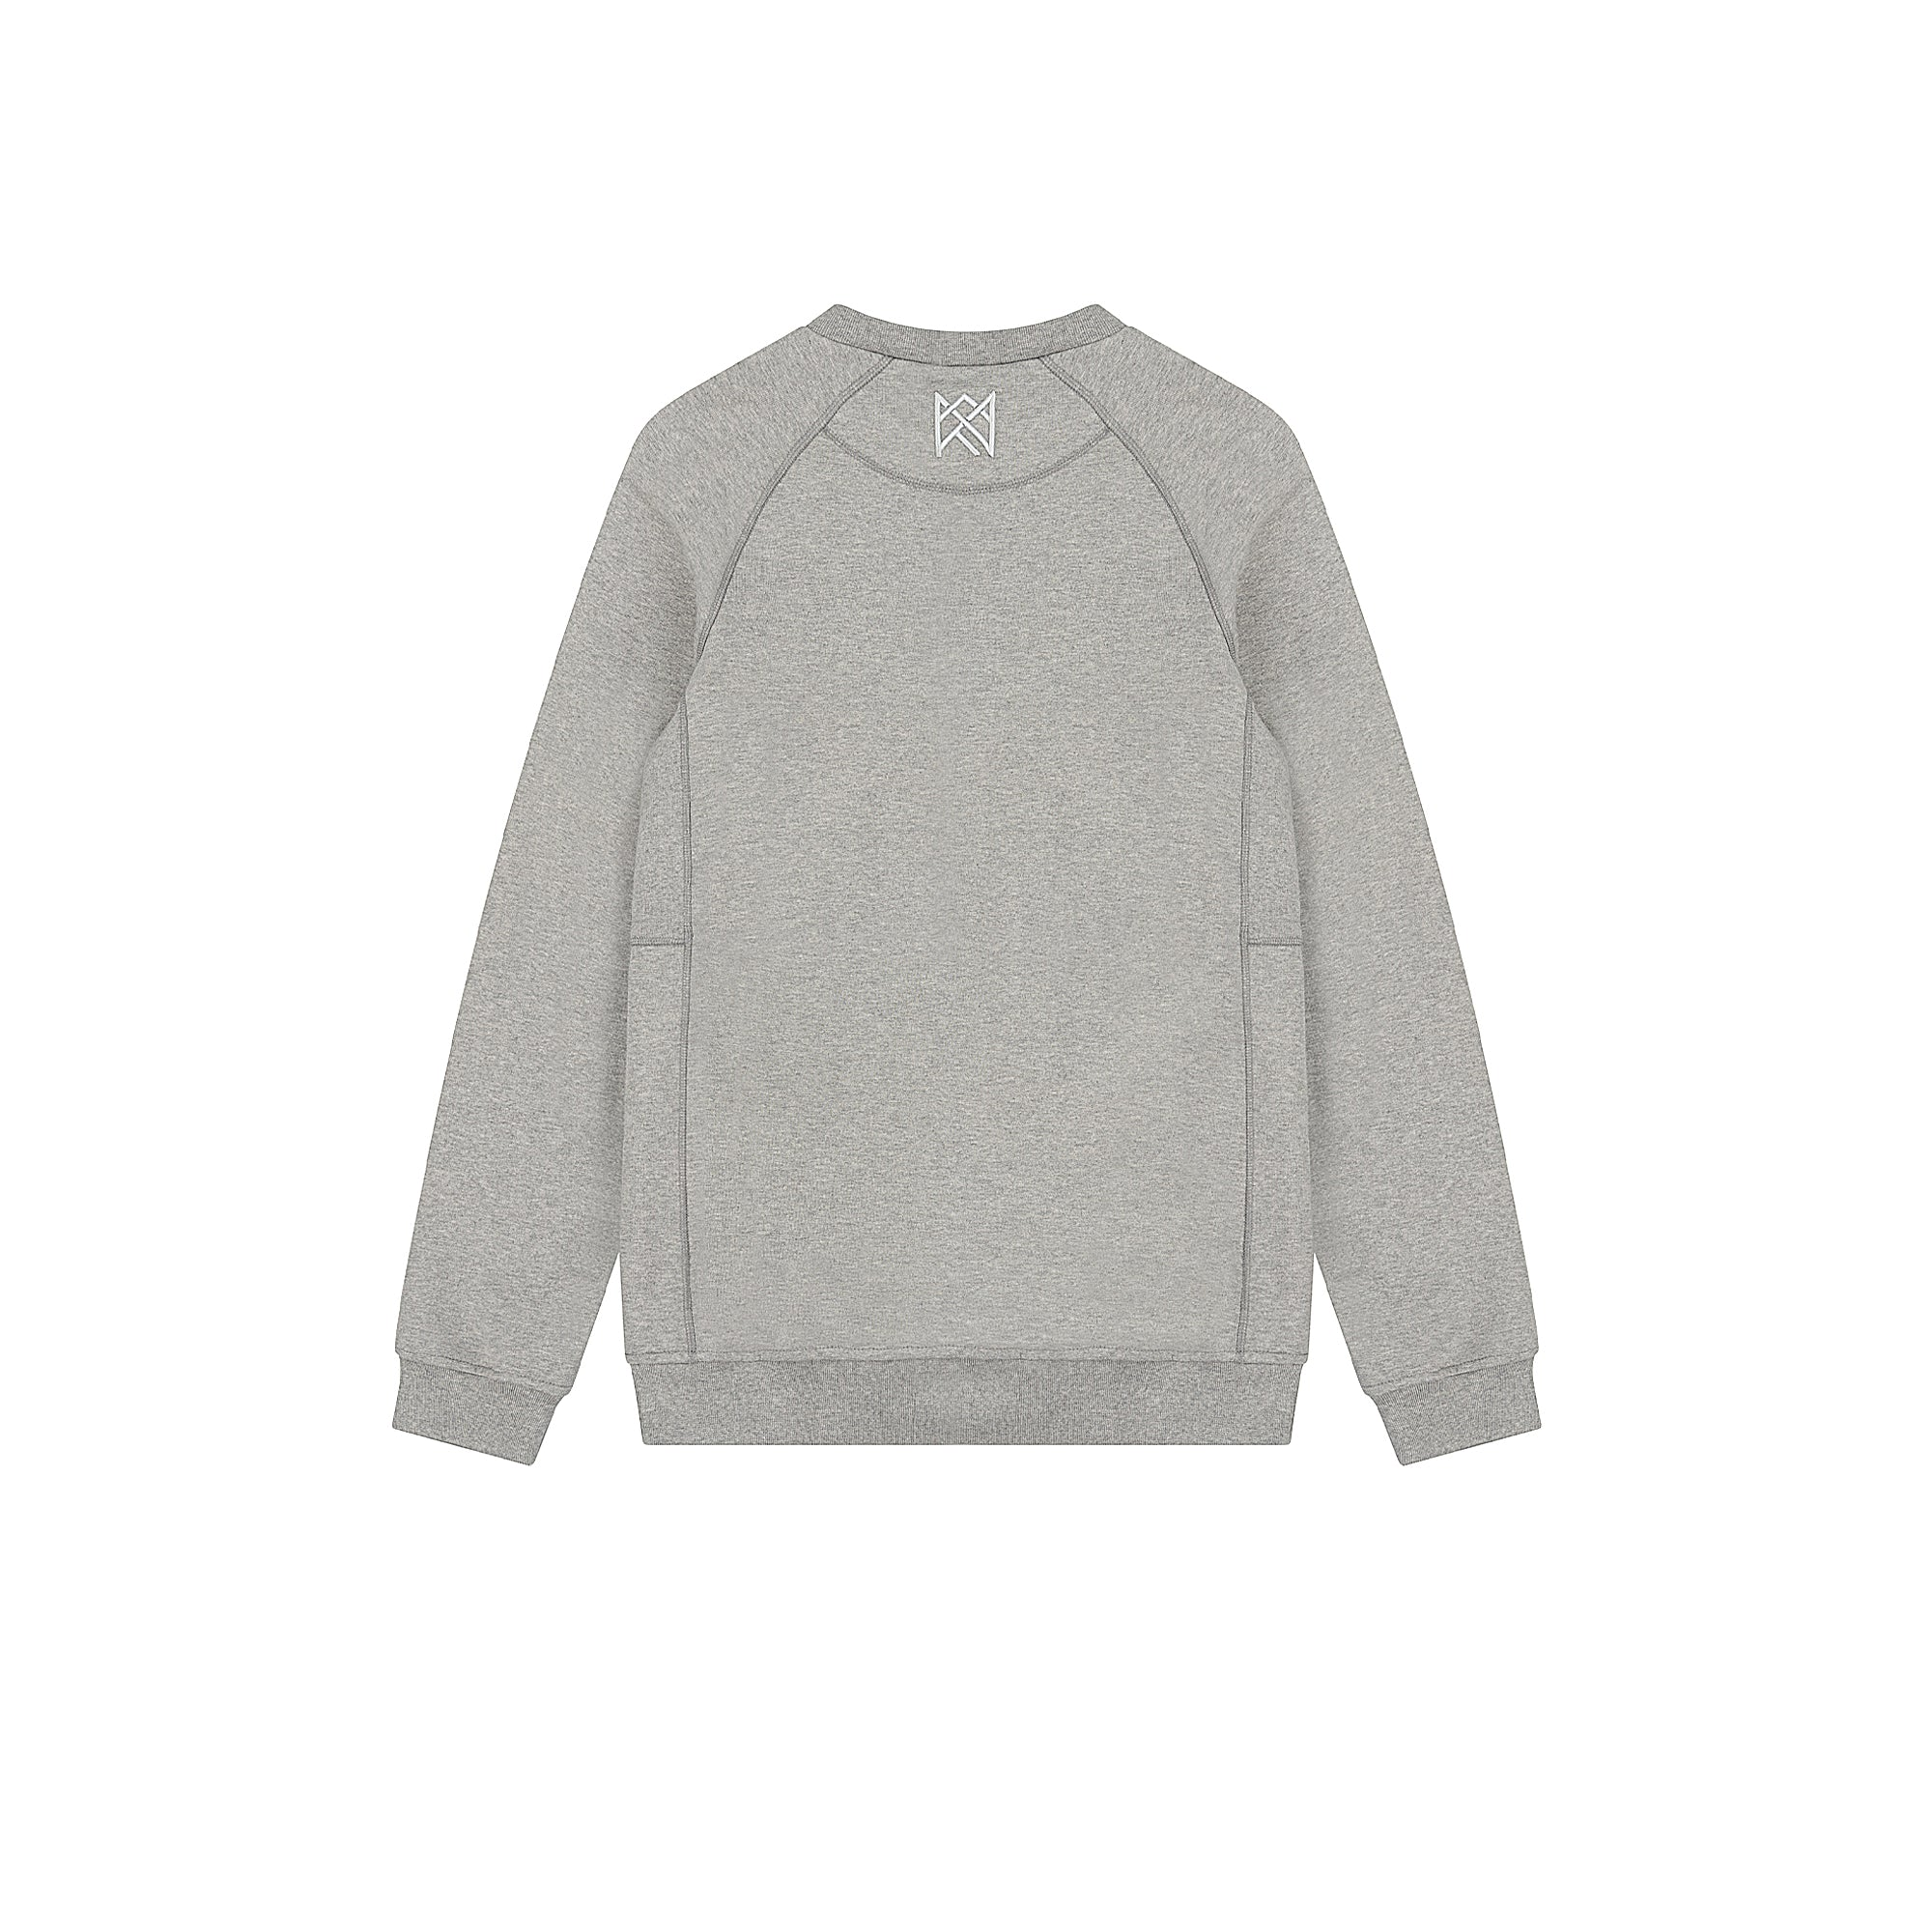 MAYOR SWEATSHIRT - GREY